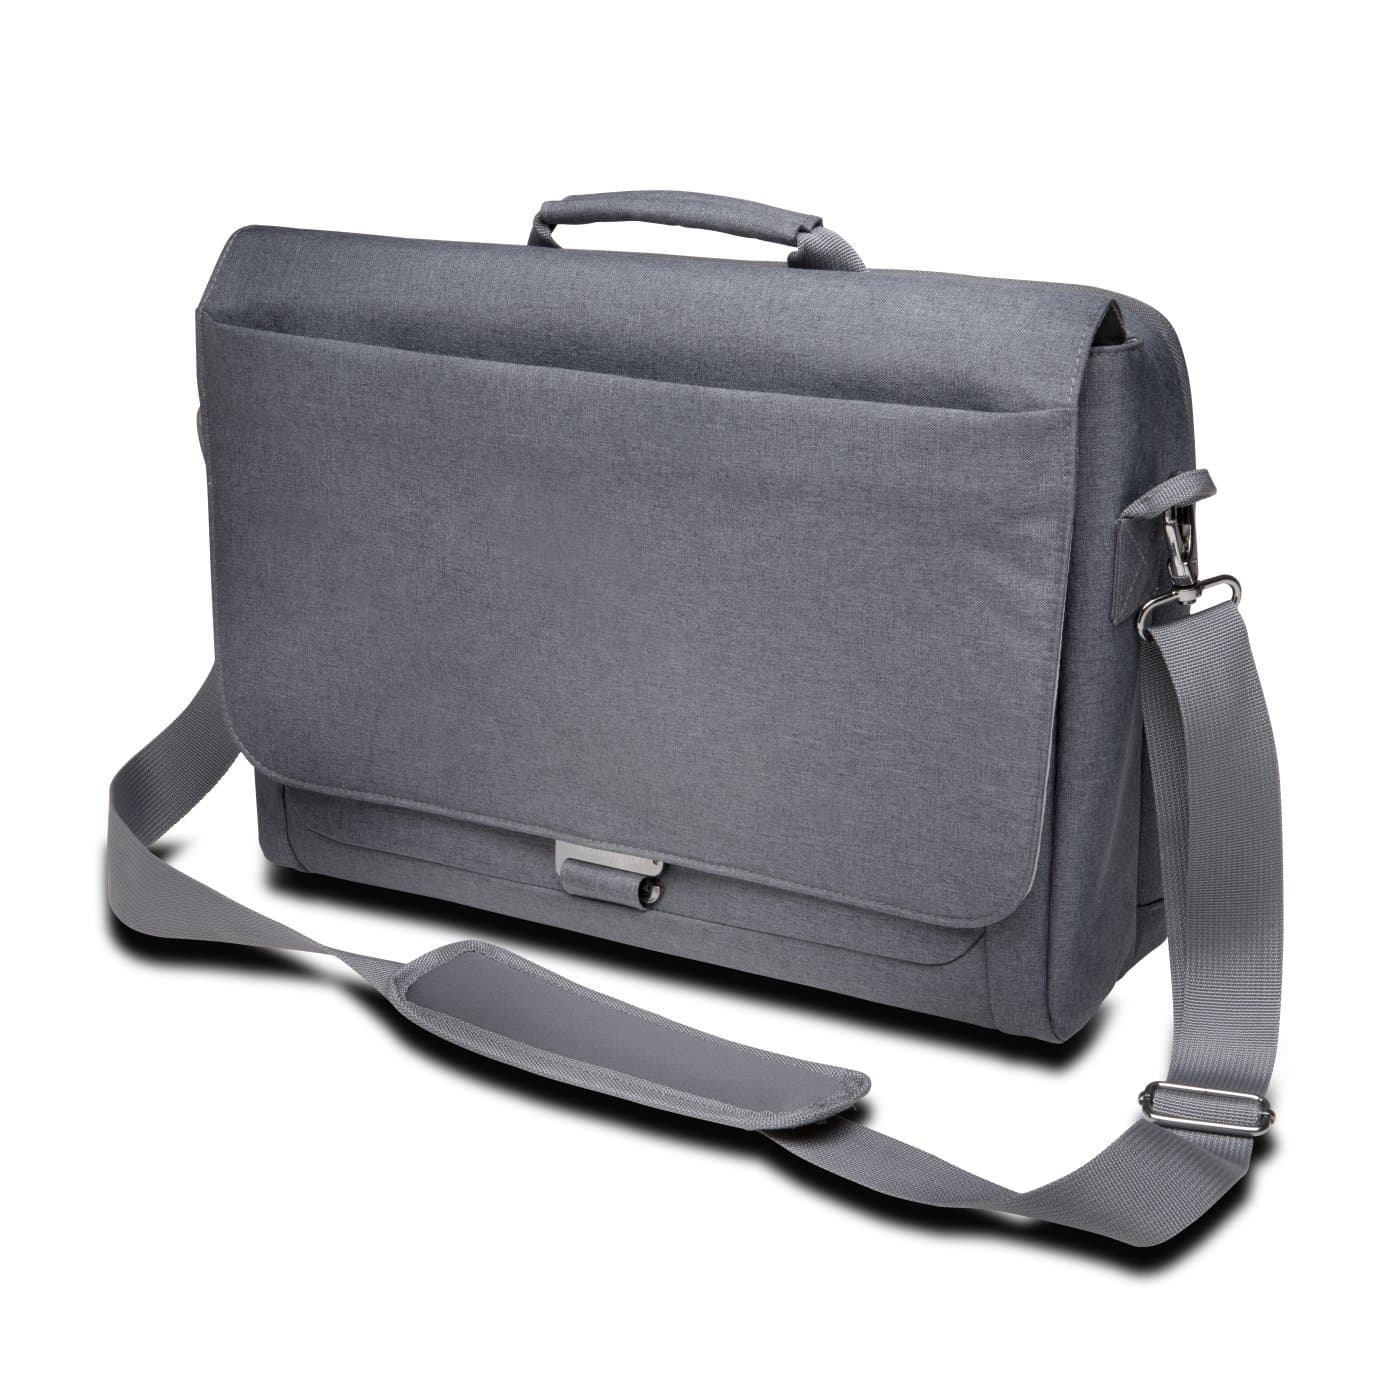 laptop messenger bags lm340 14.4u0027u0027 laptop messenger bag ffouxxp